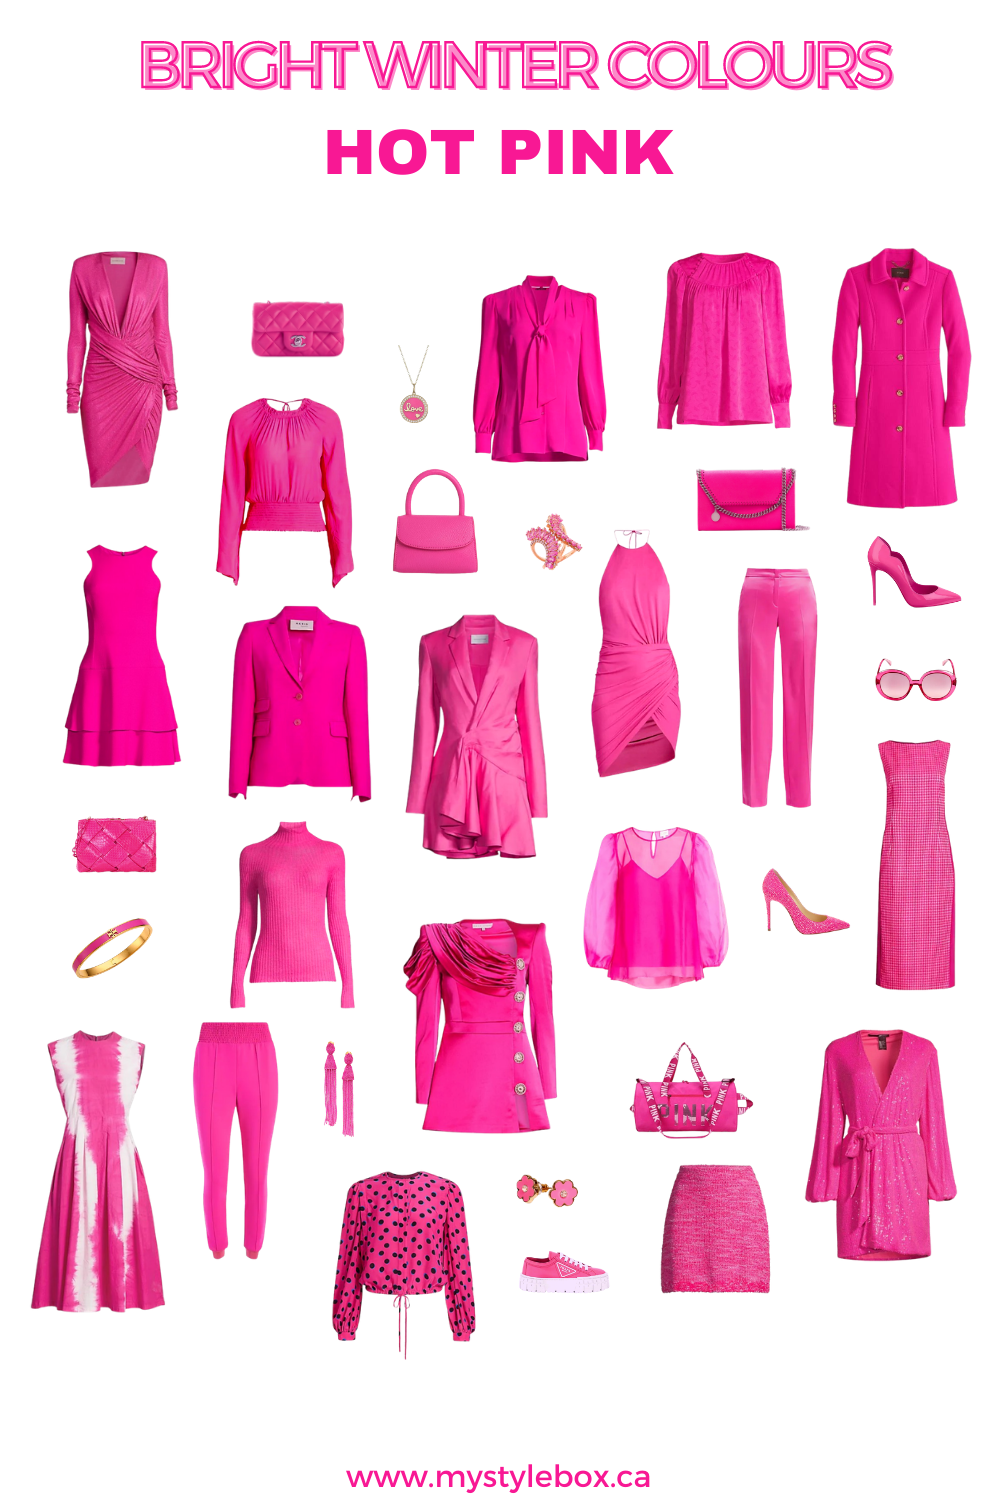 BRIGHT WINTER COLOURS HOT PINK